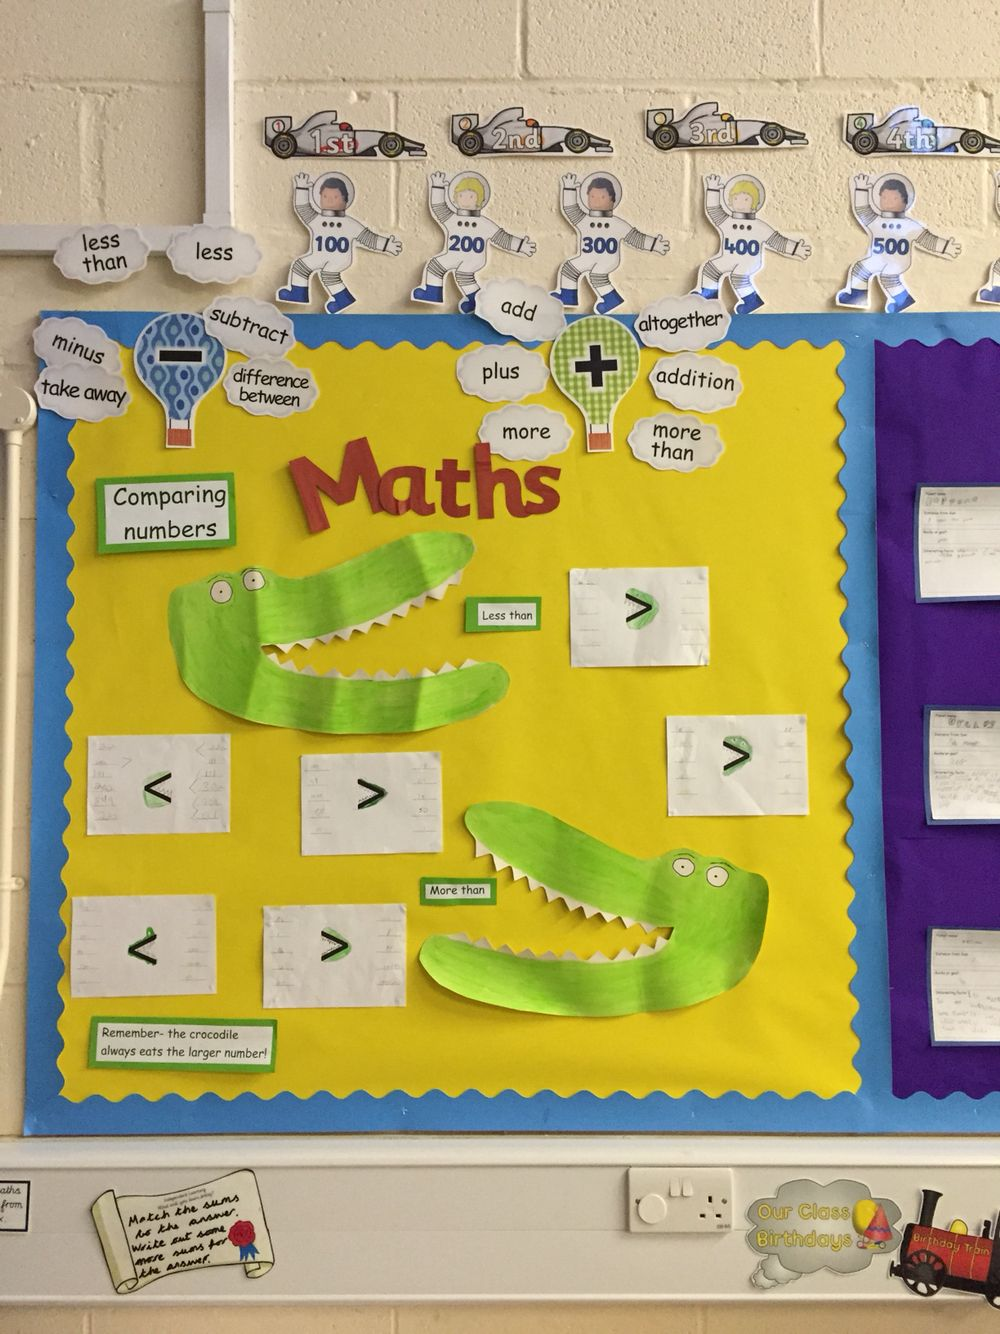 Comparing numbers maths ks1 display | Classroom displays | Pinterest